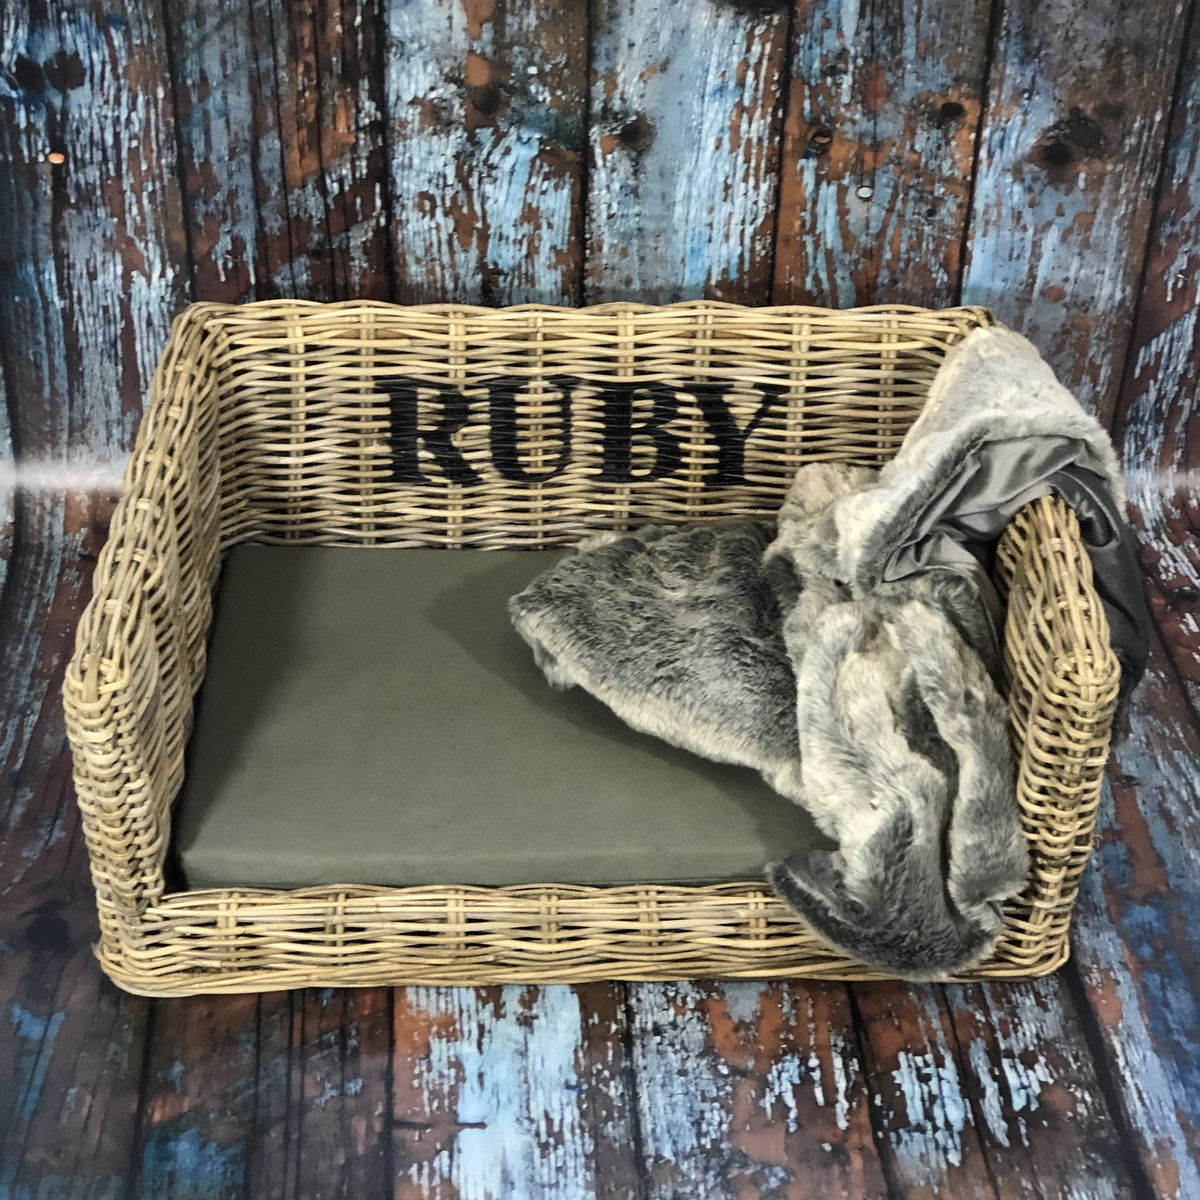 Personalised Luxury Dog Basket -  FREE UK DELIVERY - product images  of